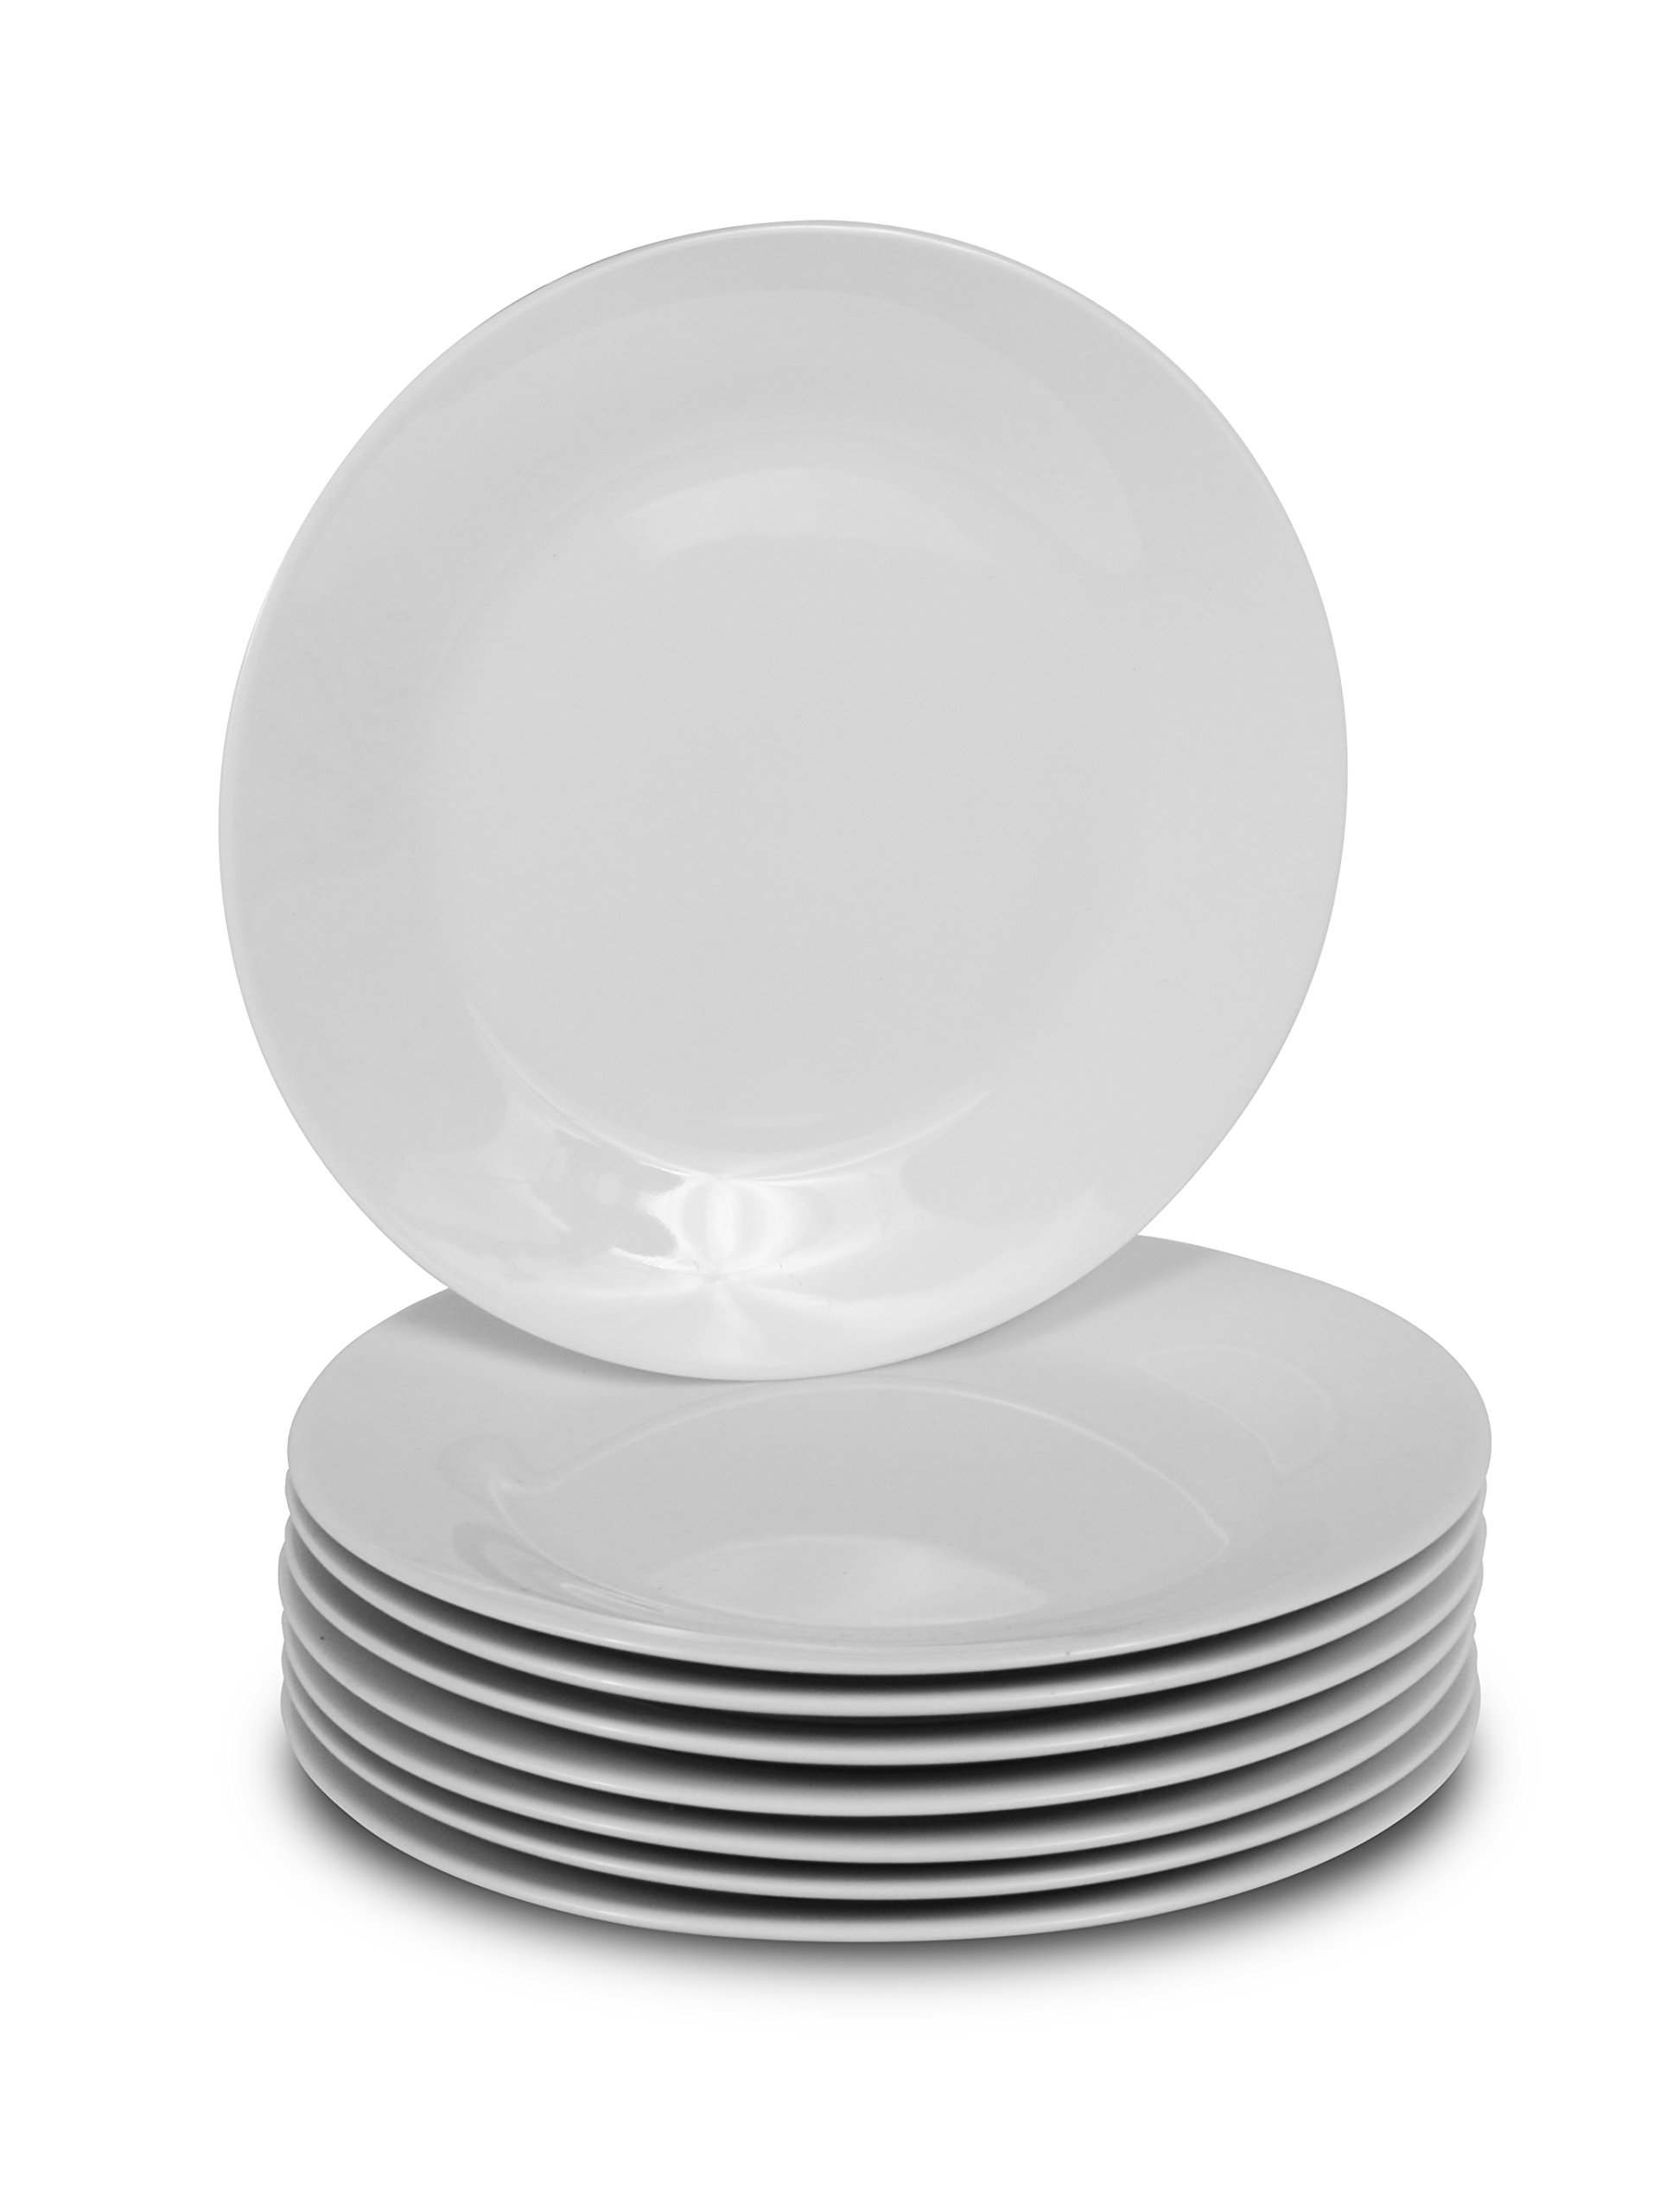 Klikel 8 White Round Salad Plates - 7.5-inch Classic Solid Coupe Style Porcelain Dinnerware